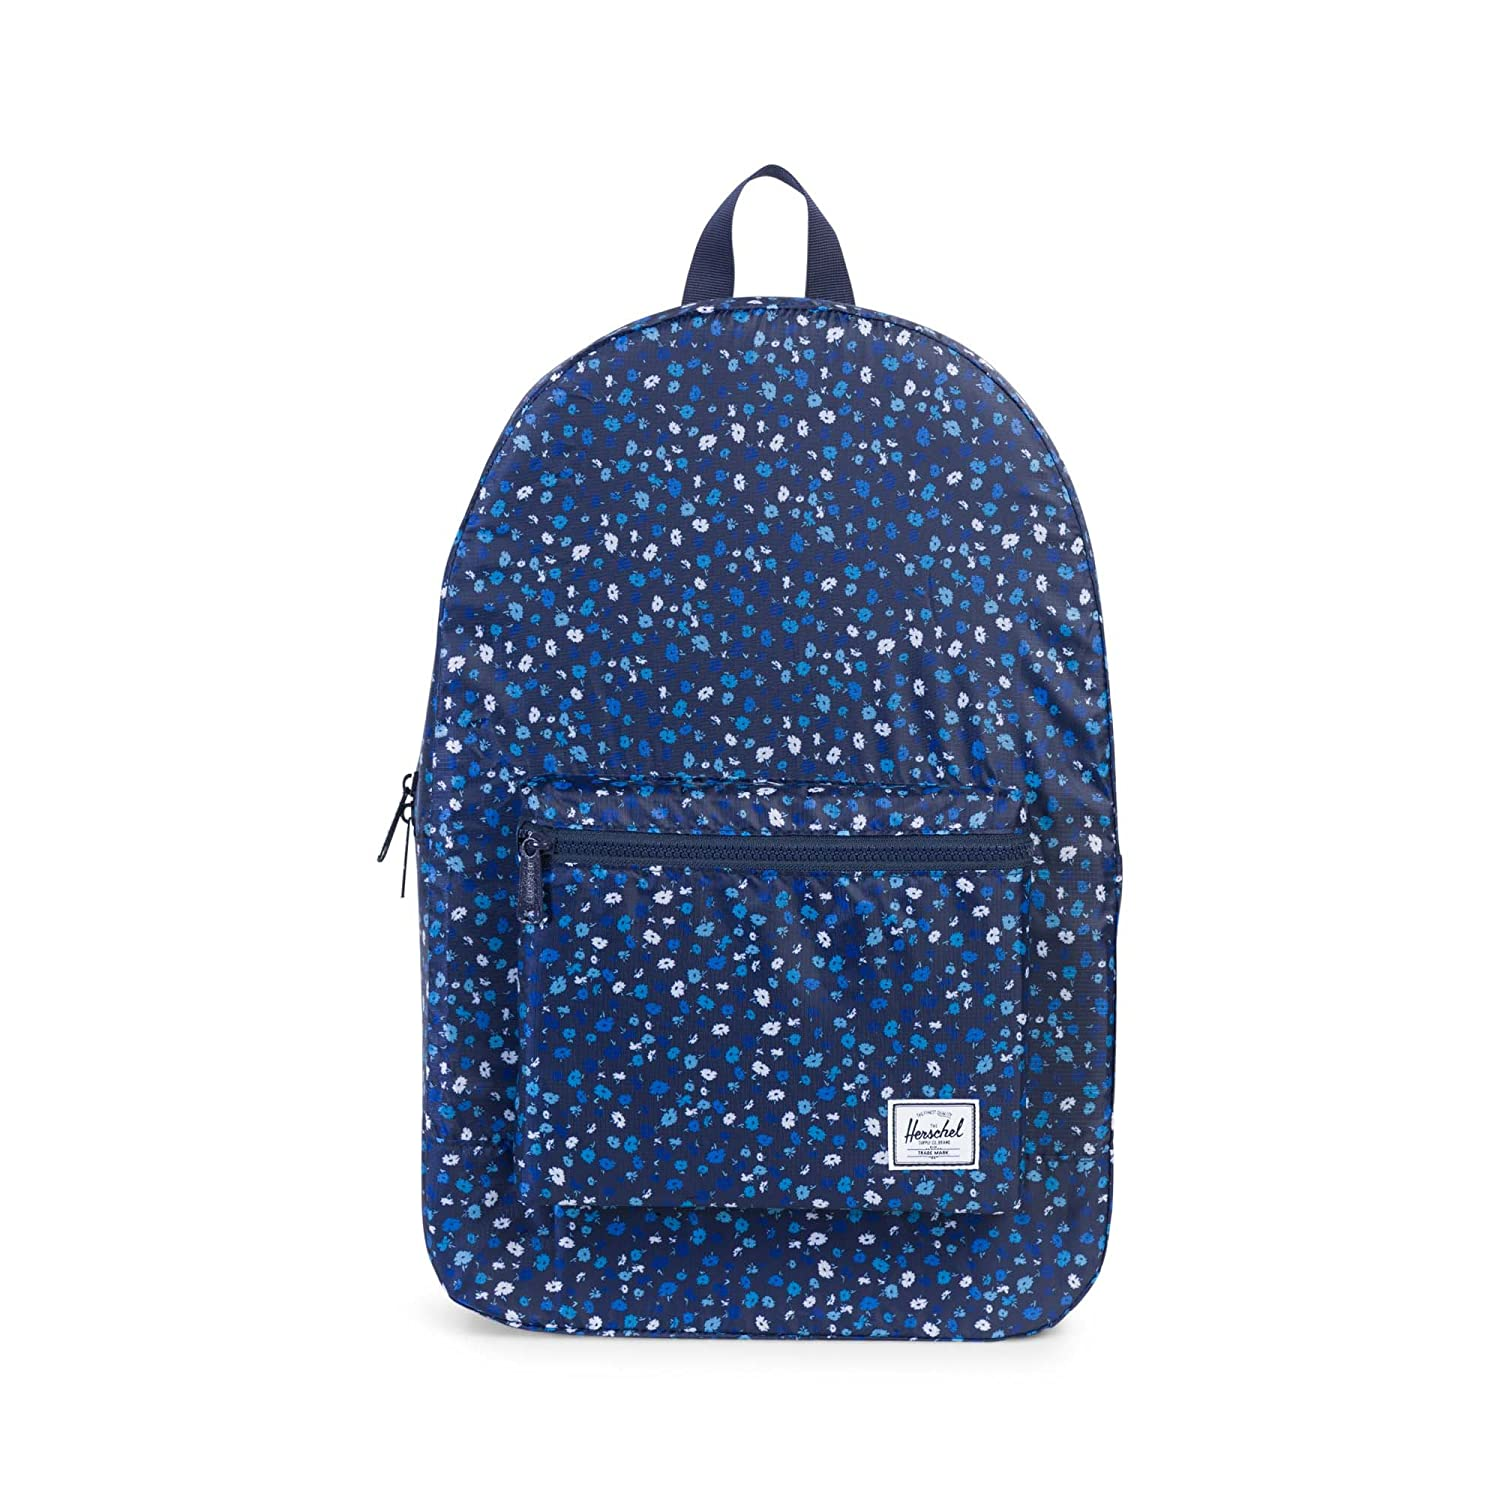 [ハーシェルサプライ] リュックサック Packable Daypack 10076-00003-OS B01N53SOV0 Peacoat Mini Floral Peacoat Mini Floral